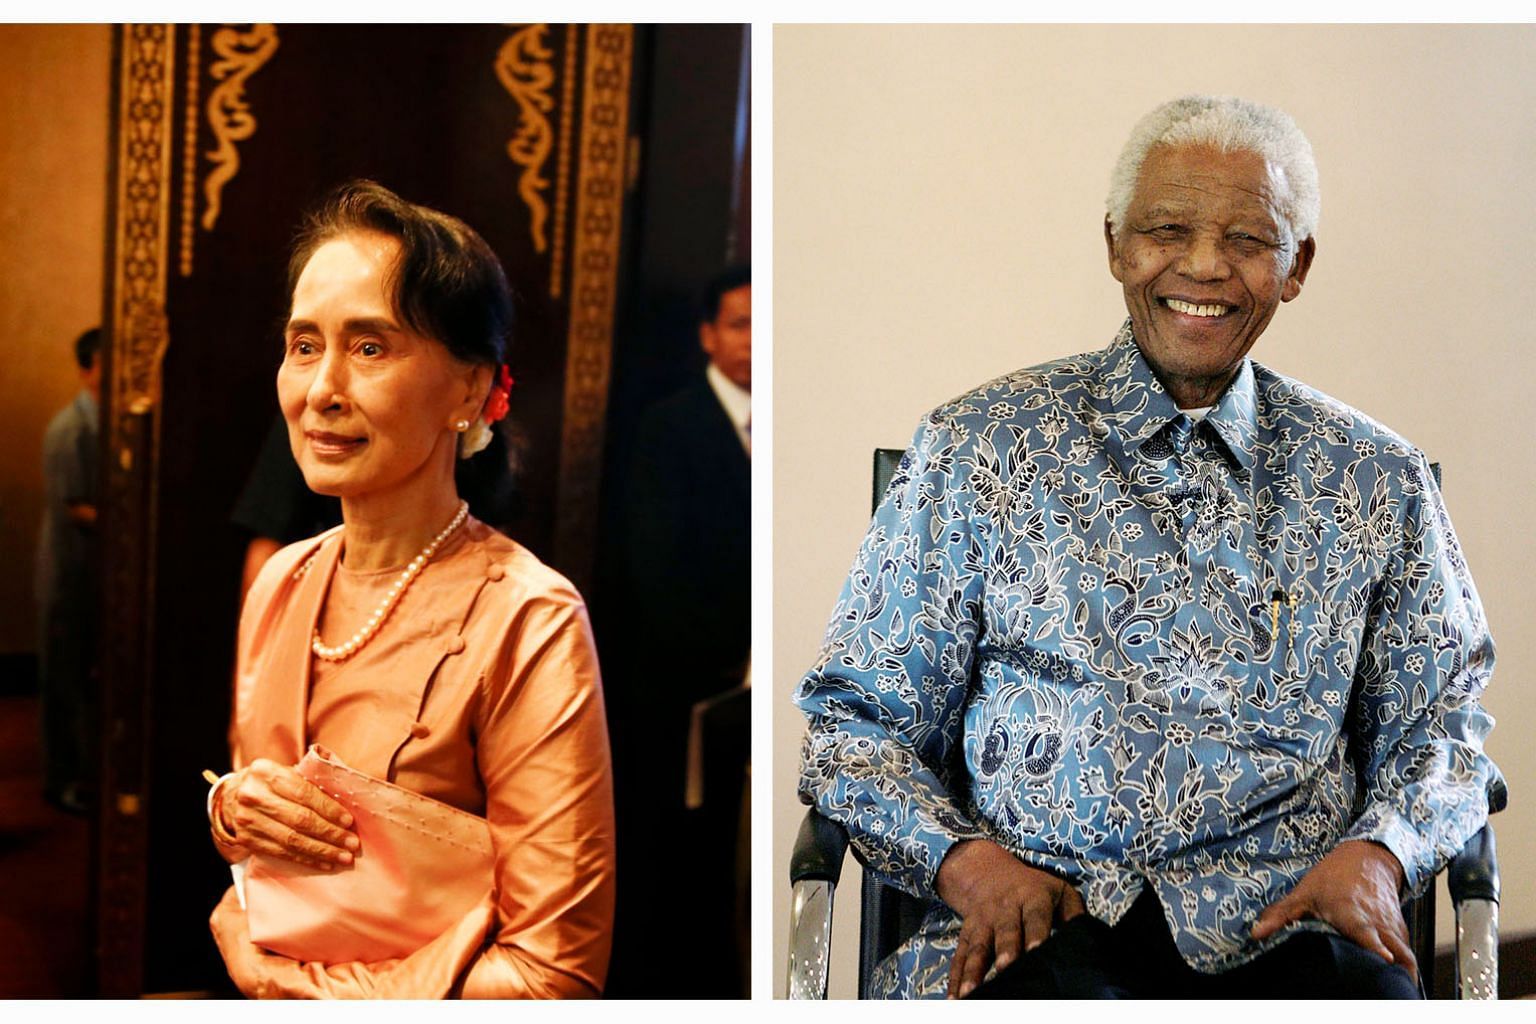 Ms Aung San Suu Kyi's reputation has taken a hit over her government's failure to deal with economic and military issues. The late South African leader Nelson Mandela's reputation has proved more enduring.